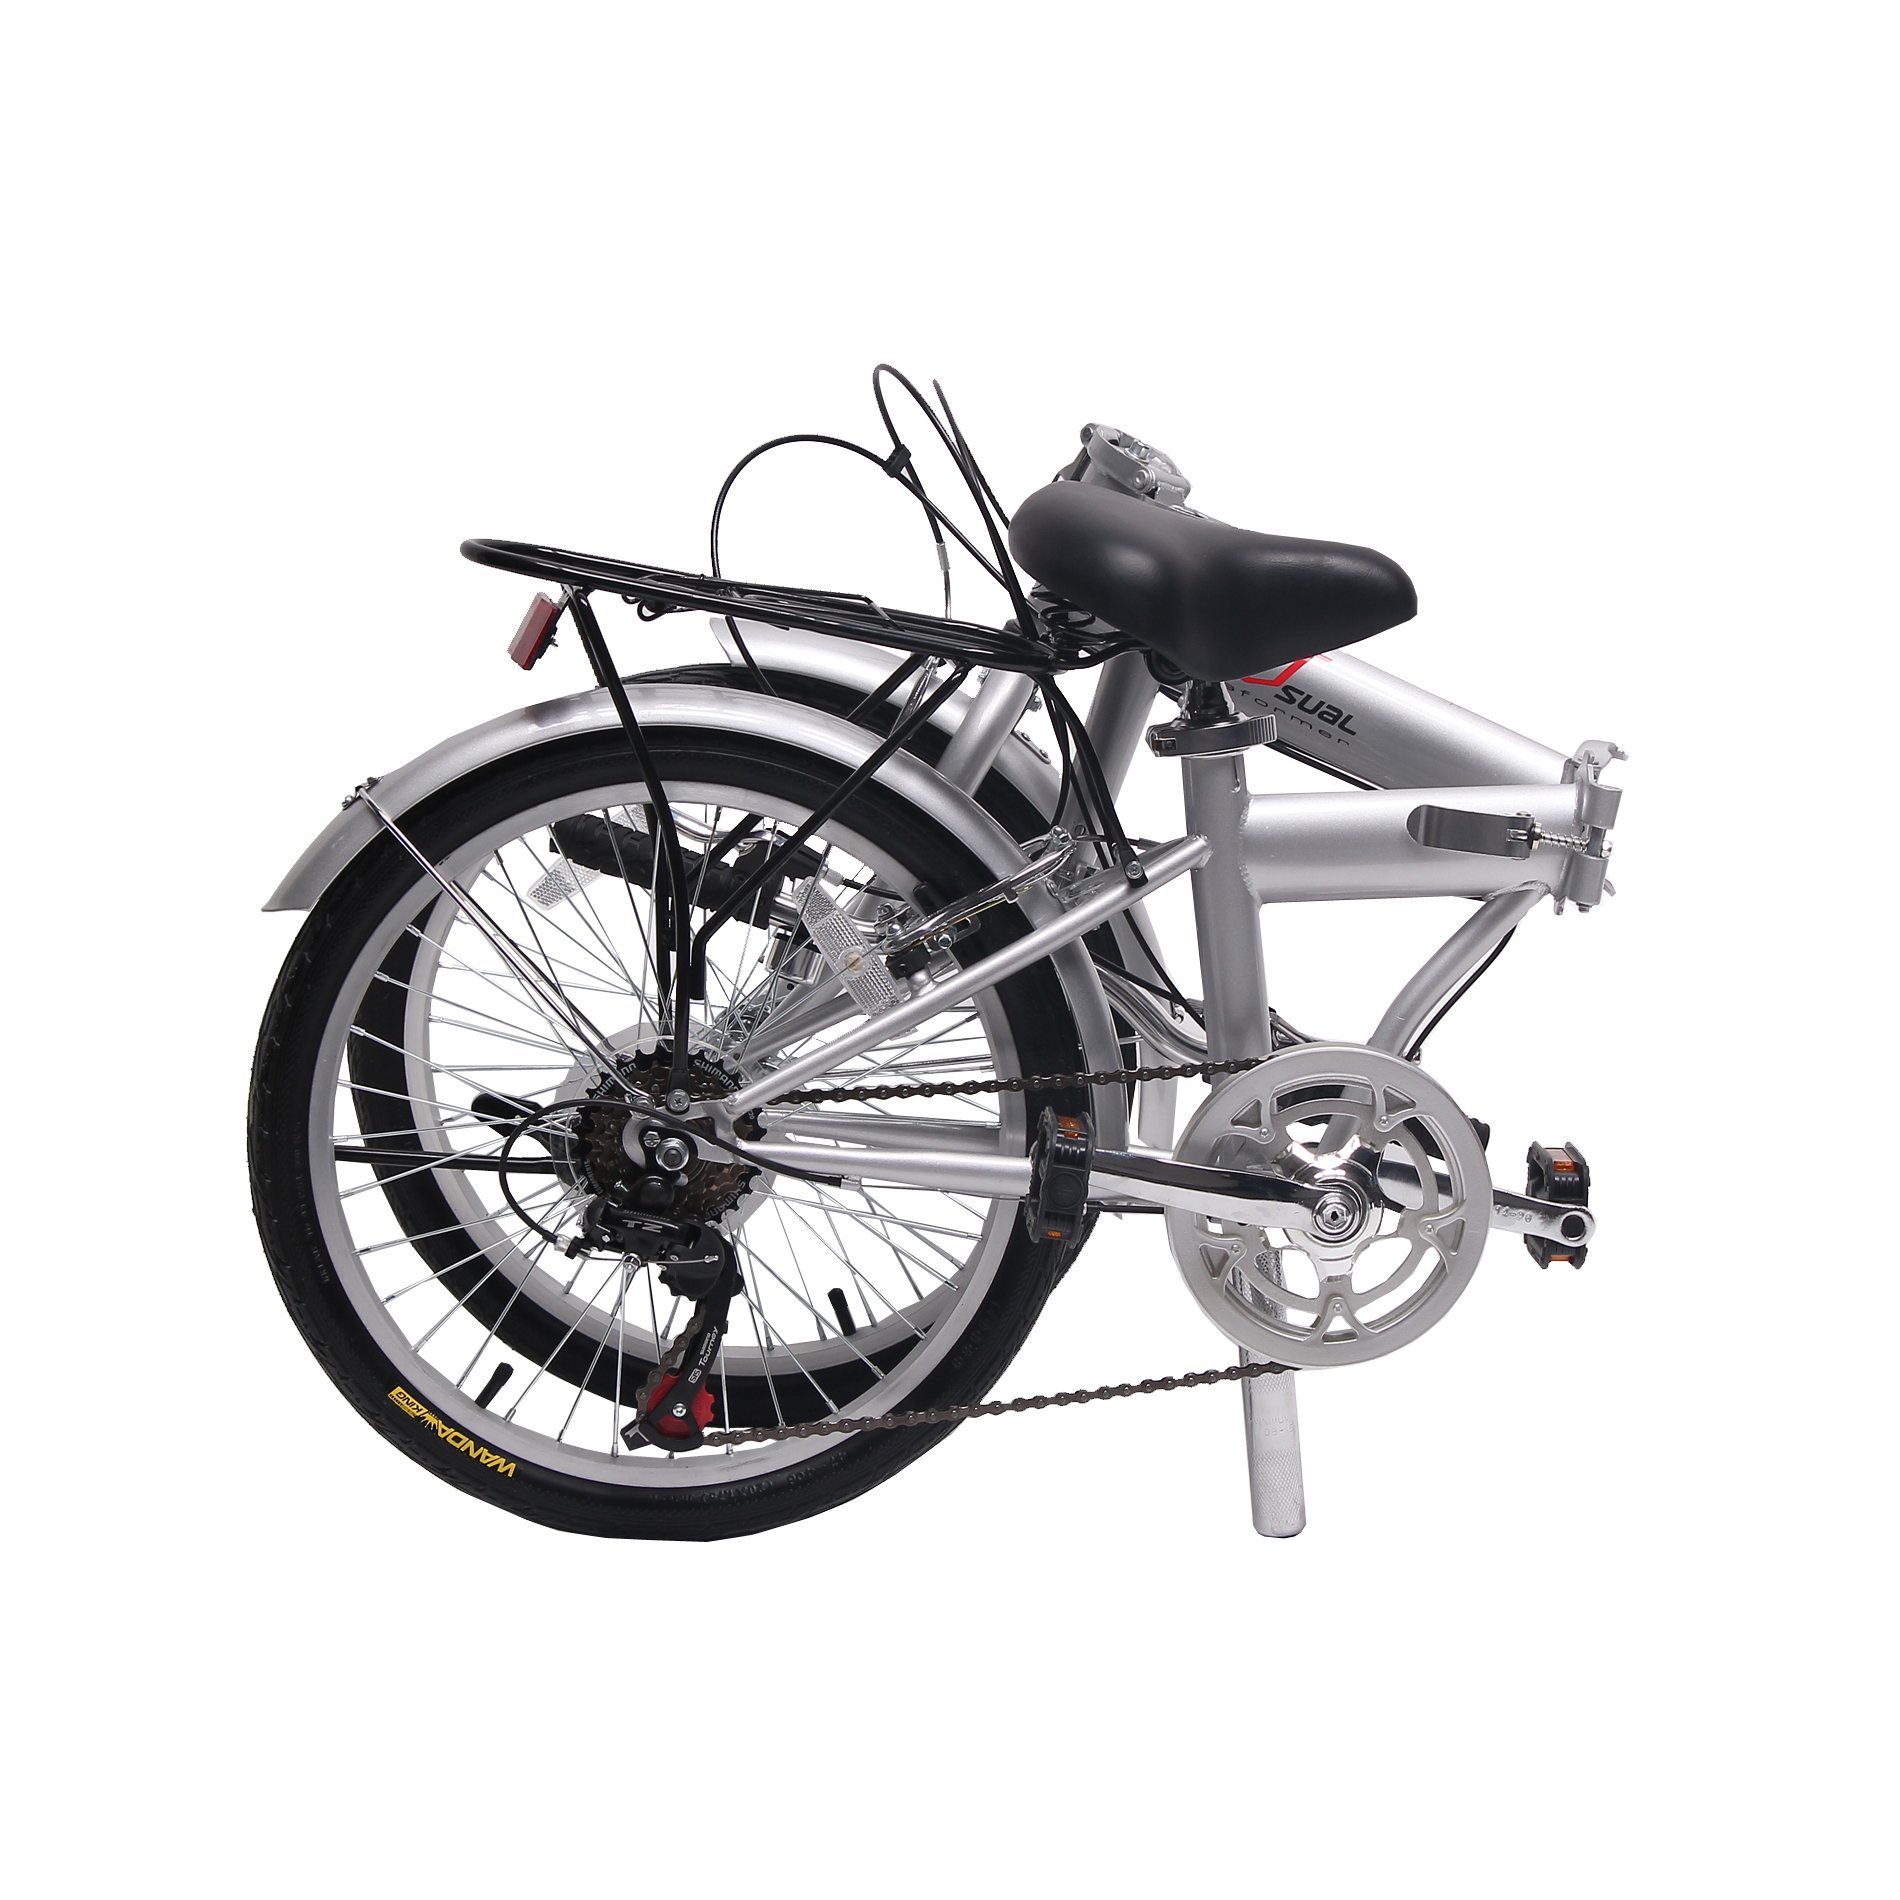 unYOUsual U transformer 20'' Folding City Bike Bicycle 6 Speed Shimano Gear Steel Frame Mudguard Rear Carrier Silver by IDS (Image #2)